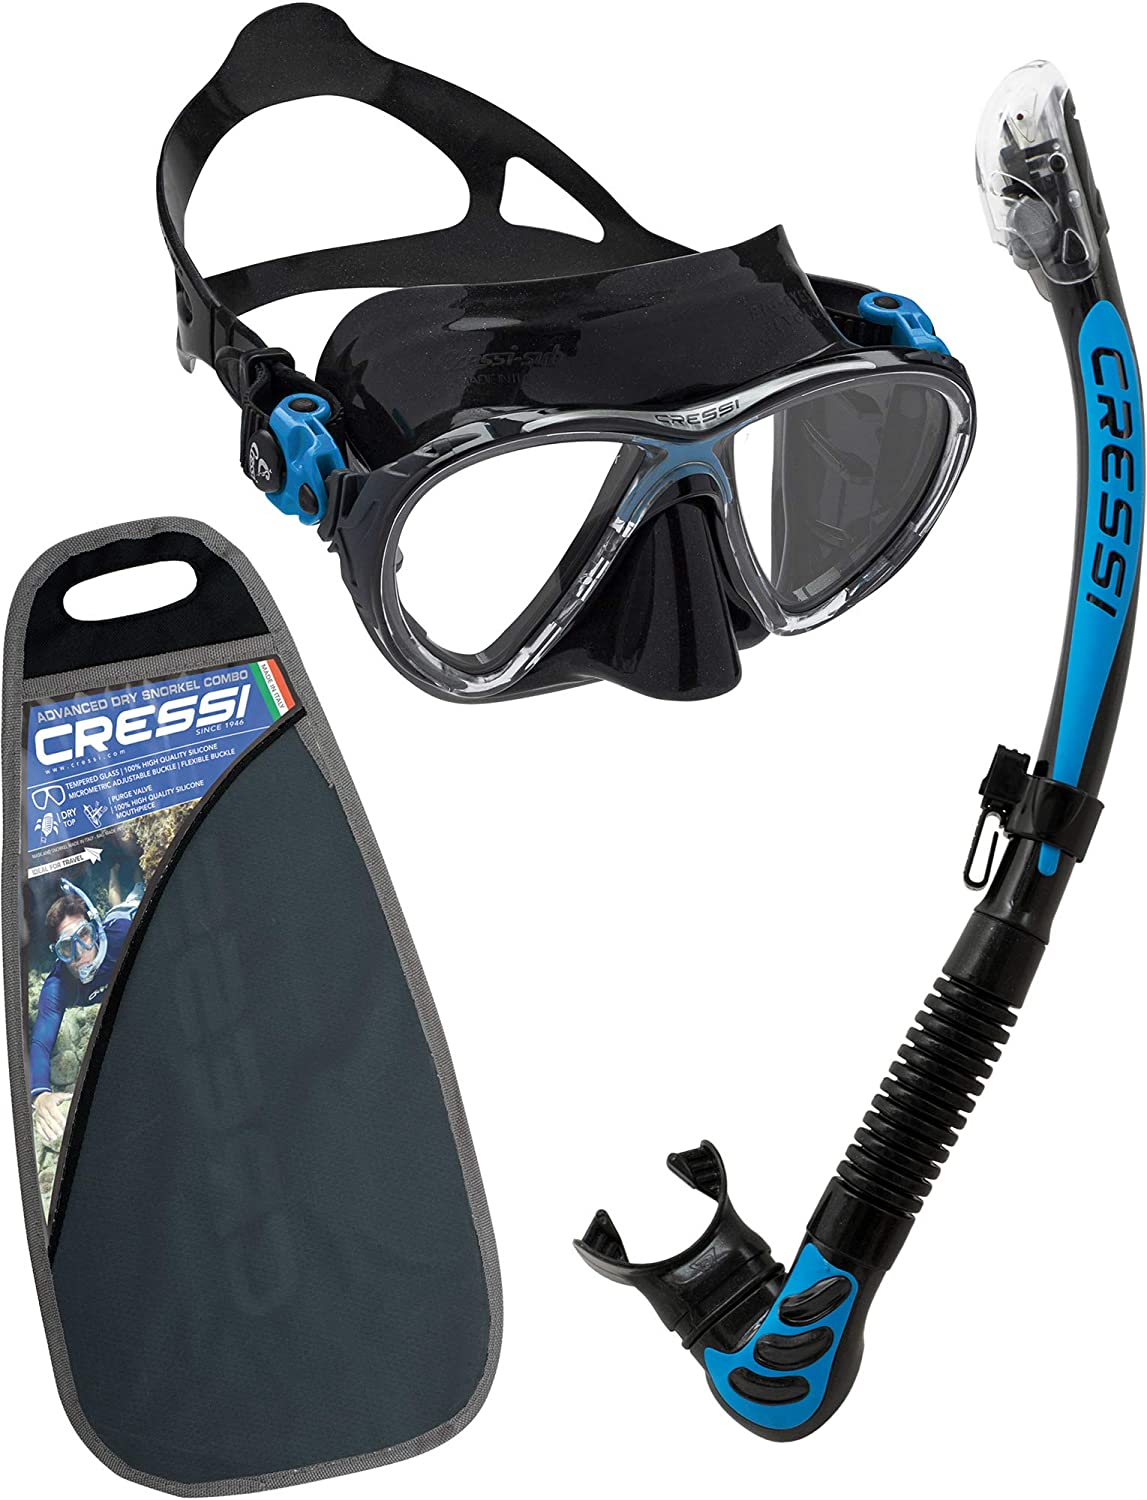 Cressi C/Set Big Eyes Evolution+Alpha/UD Professional Combo, Set per Immersioni e Snorkelling Unisex – Adulto, Nero/Blu, Uni Set per Immersioni e Snorkelling Unisex - Adulto WDS337520